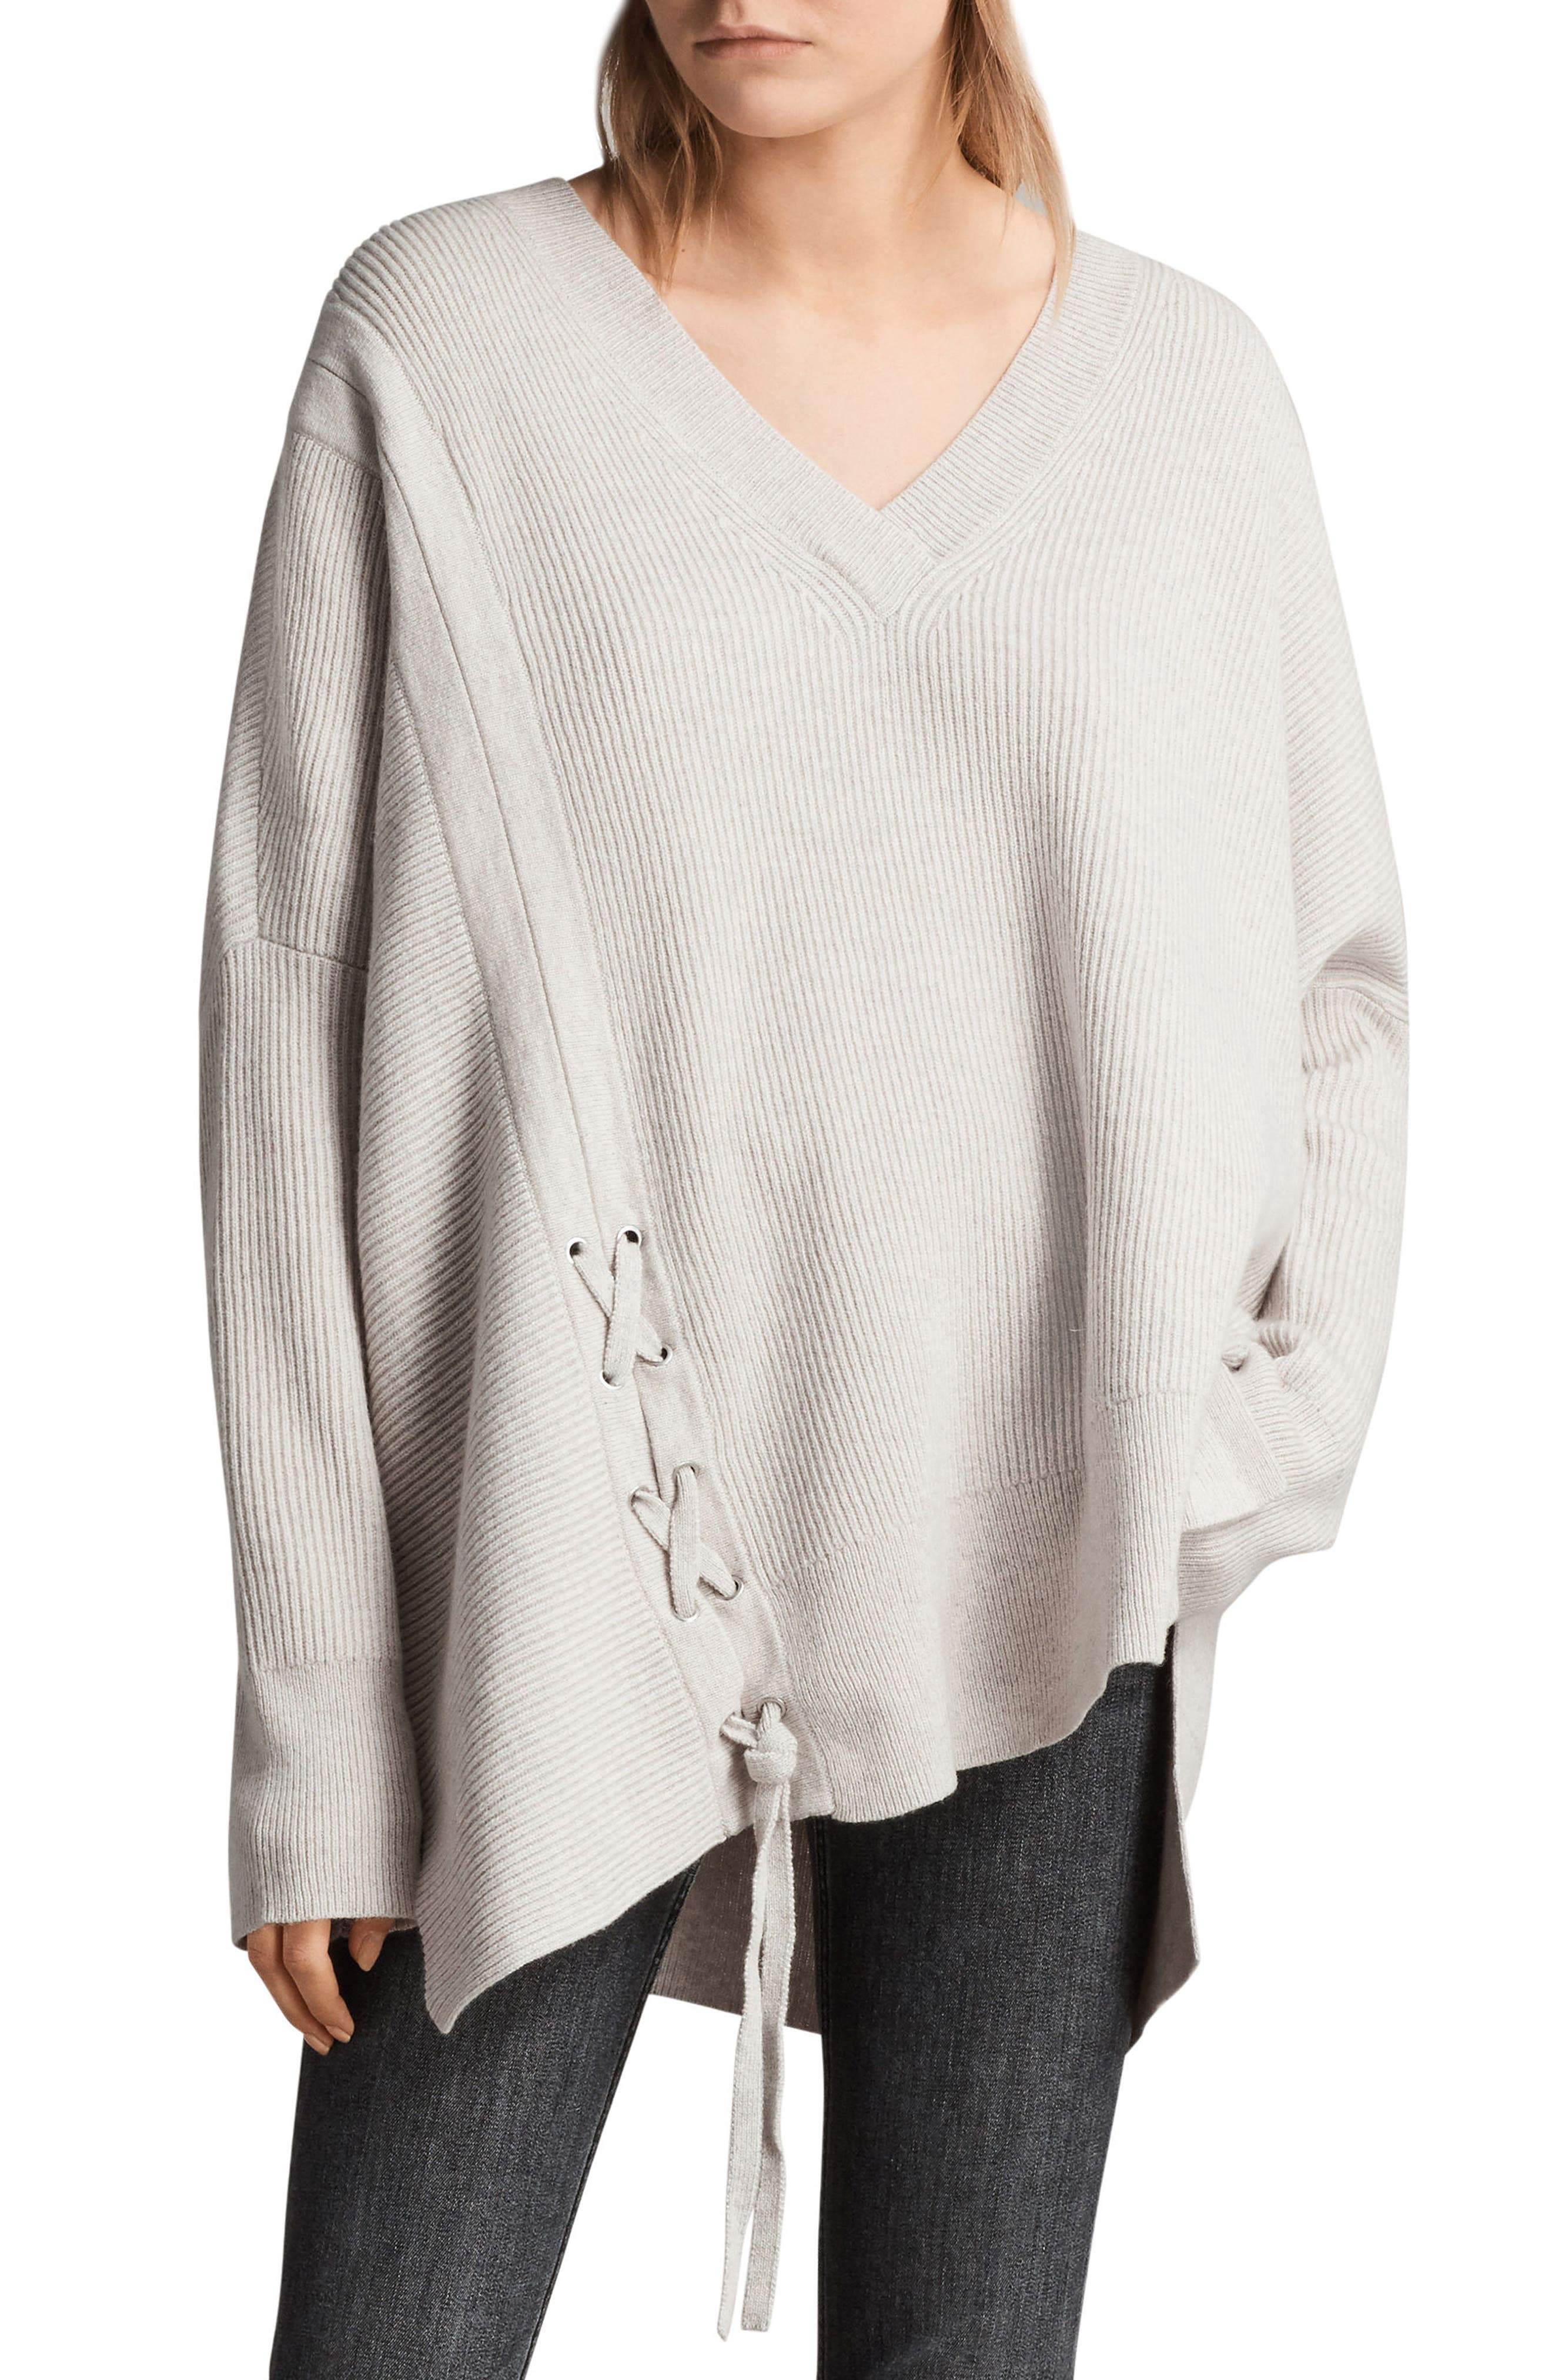 Able Laced Sweater,                             Main thumbnail 1, color,                             121